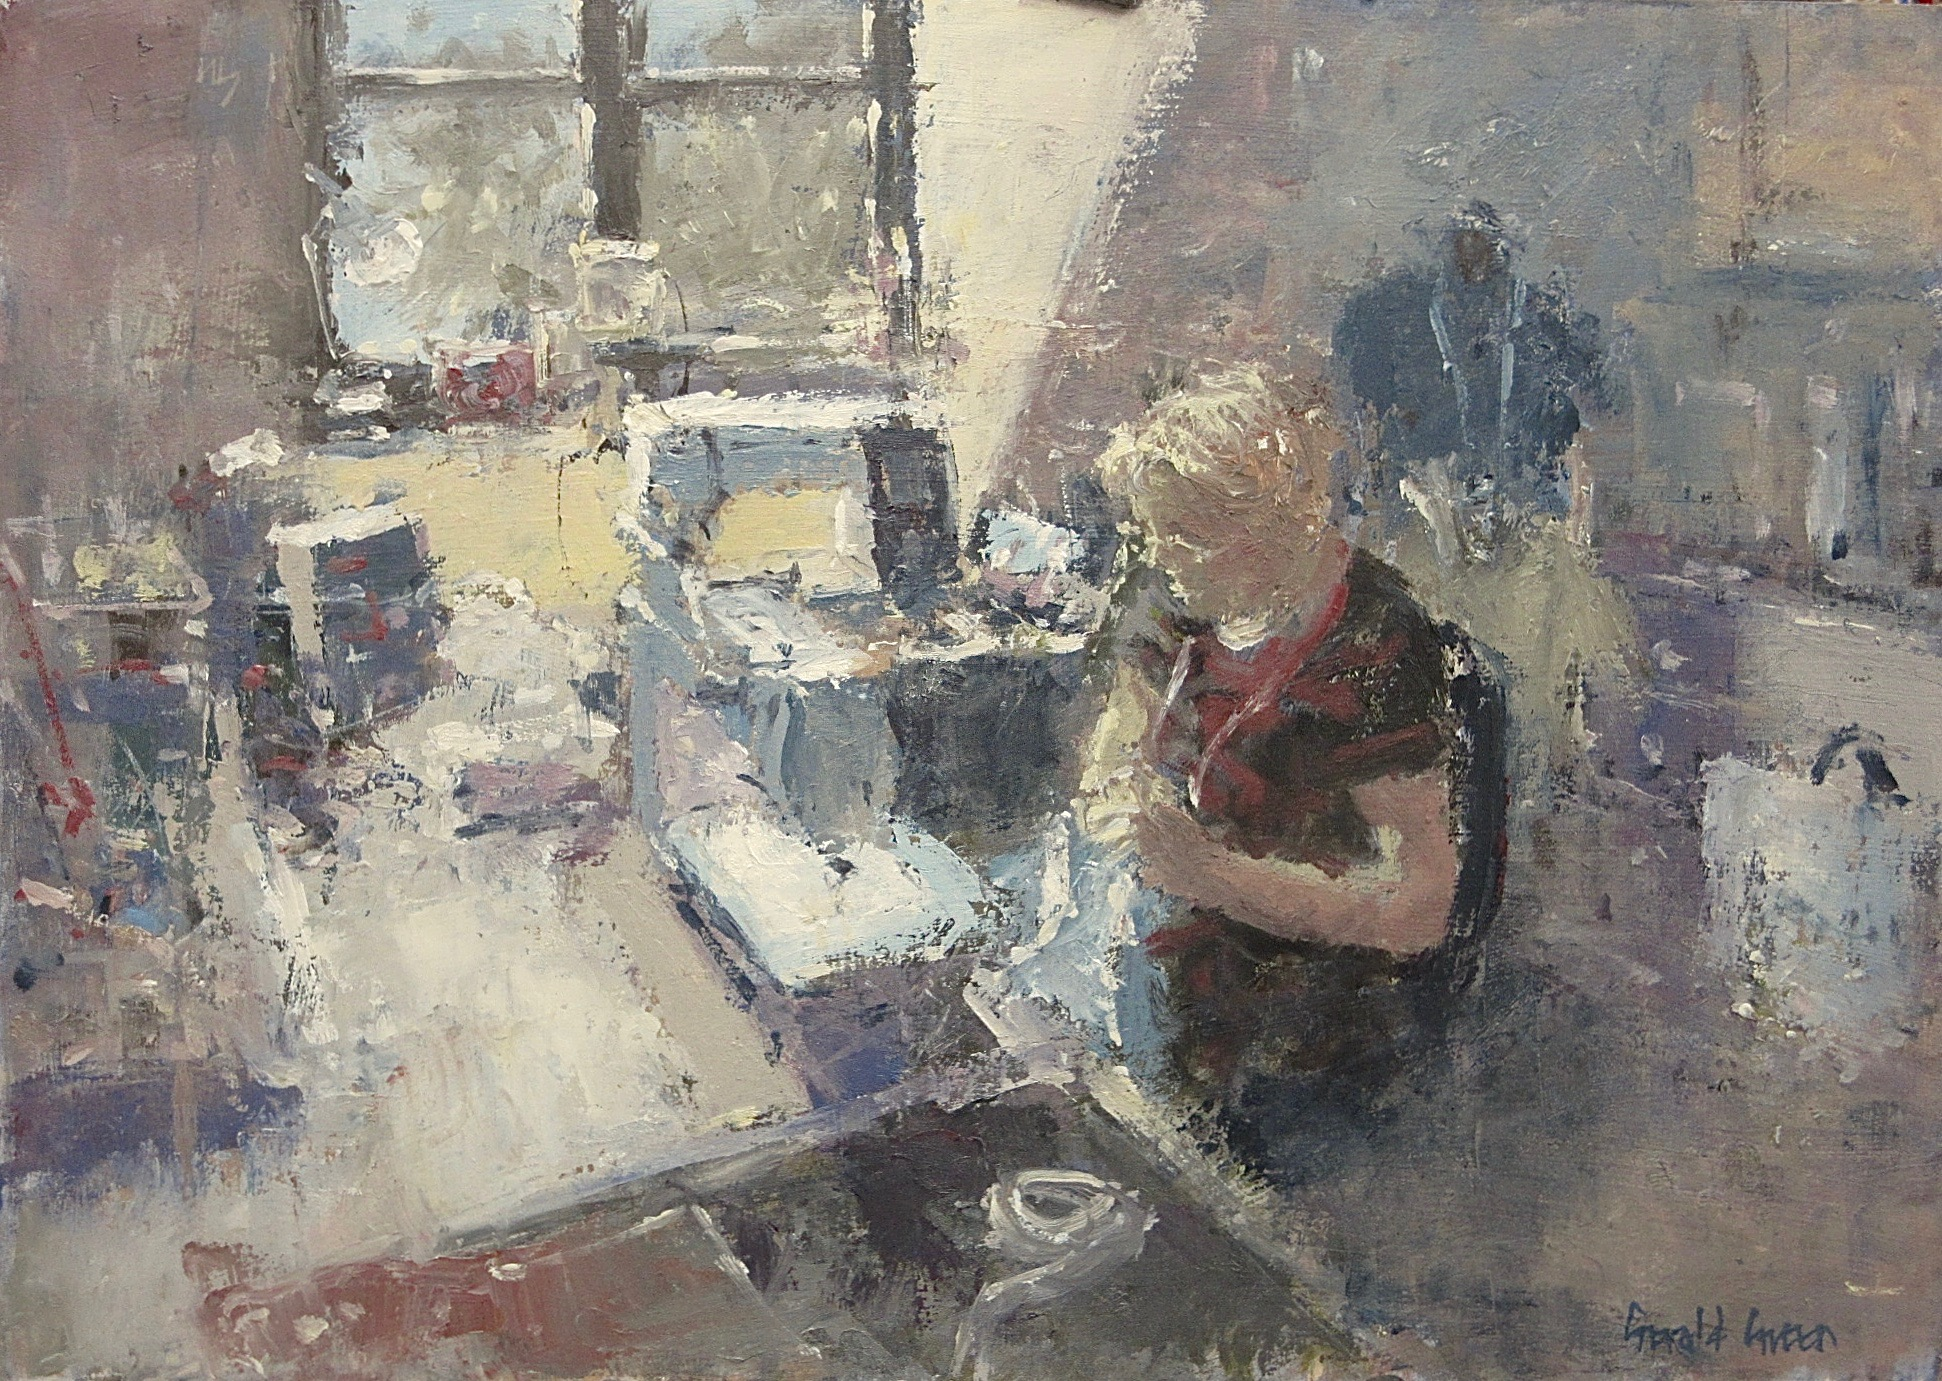 The Sewing Room: 11.75 x 16.5 in: £950